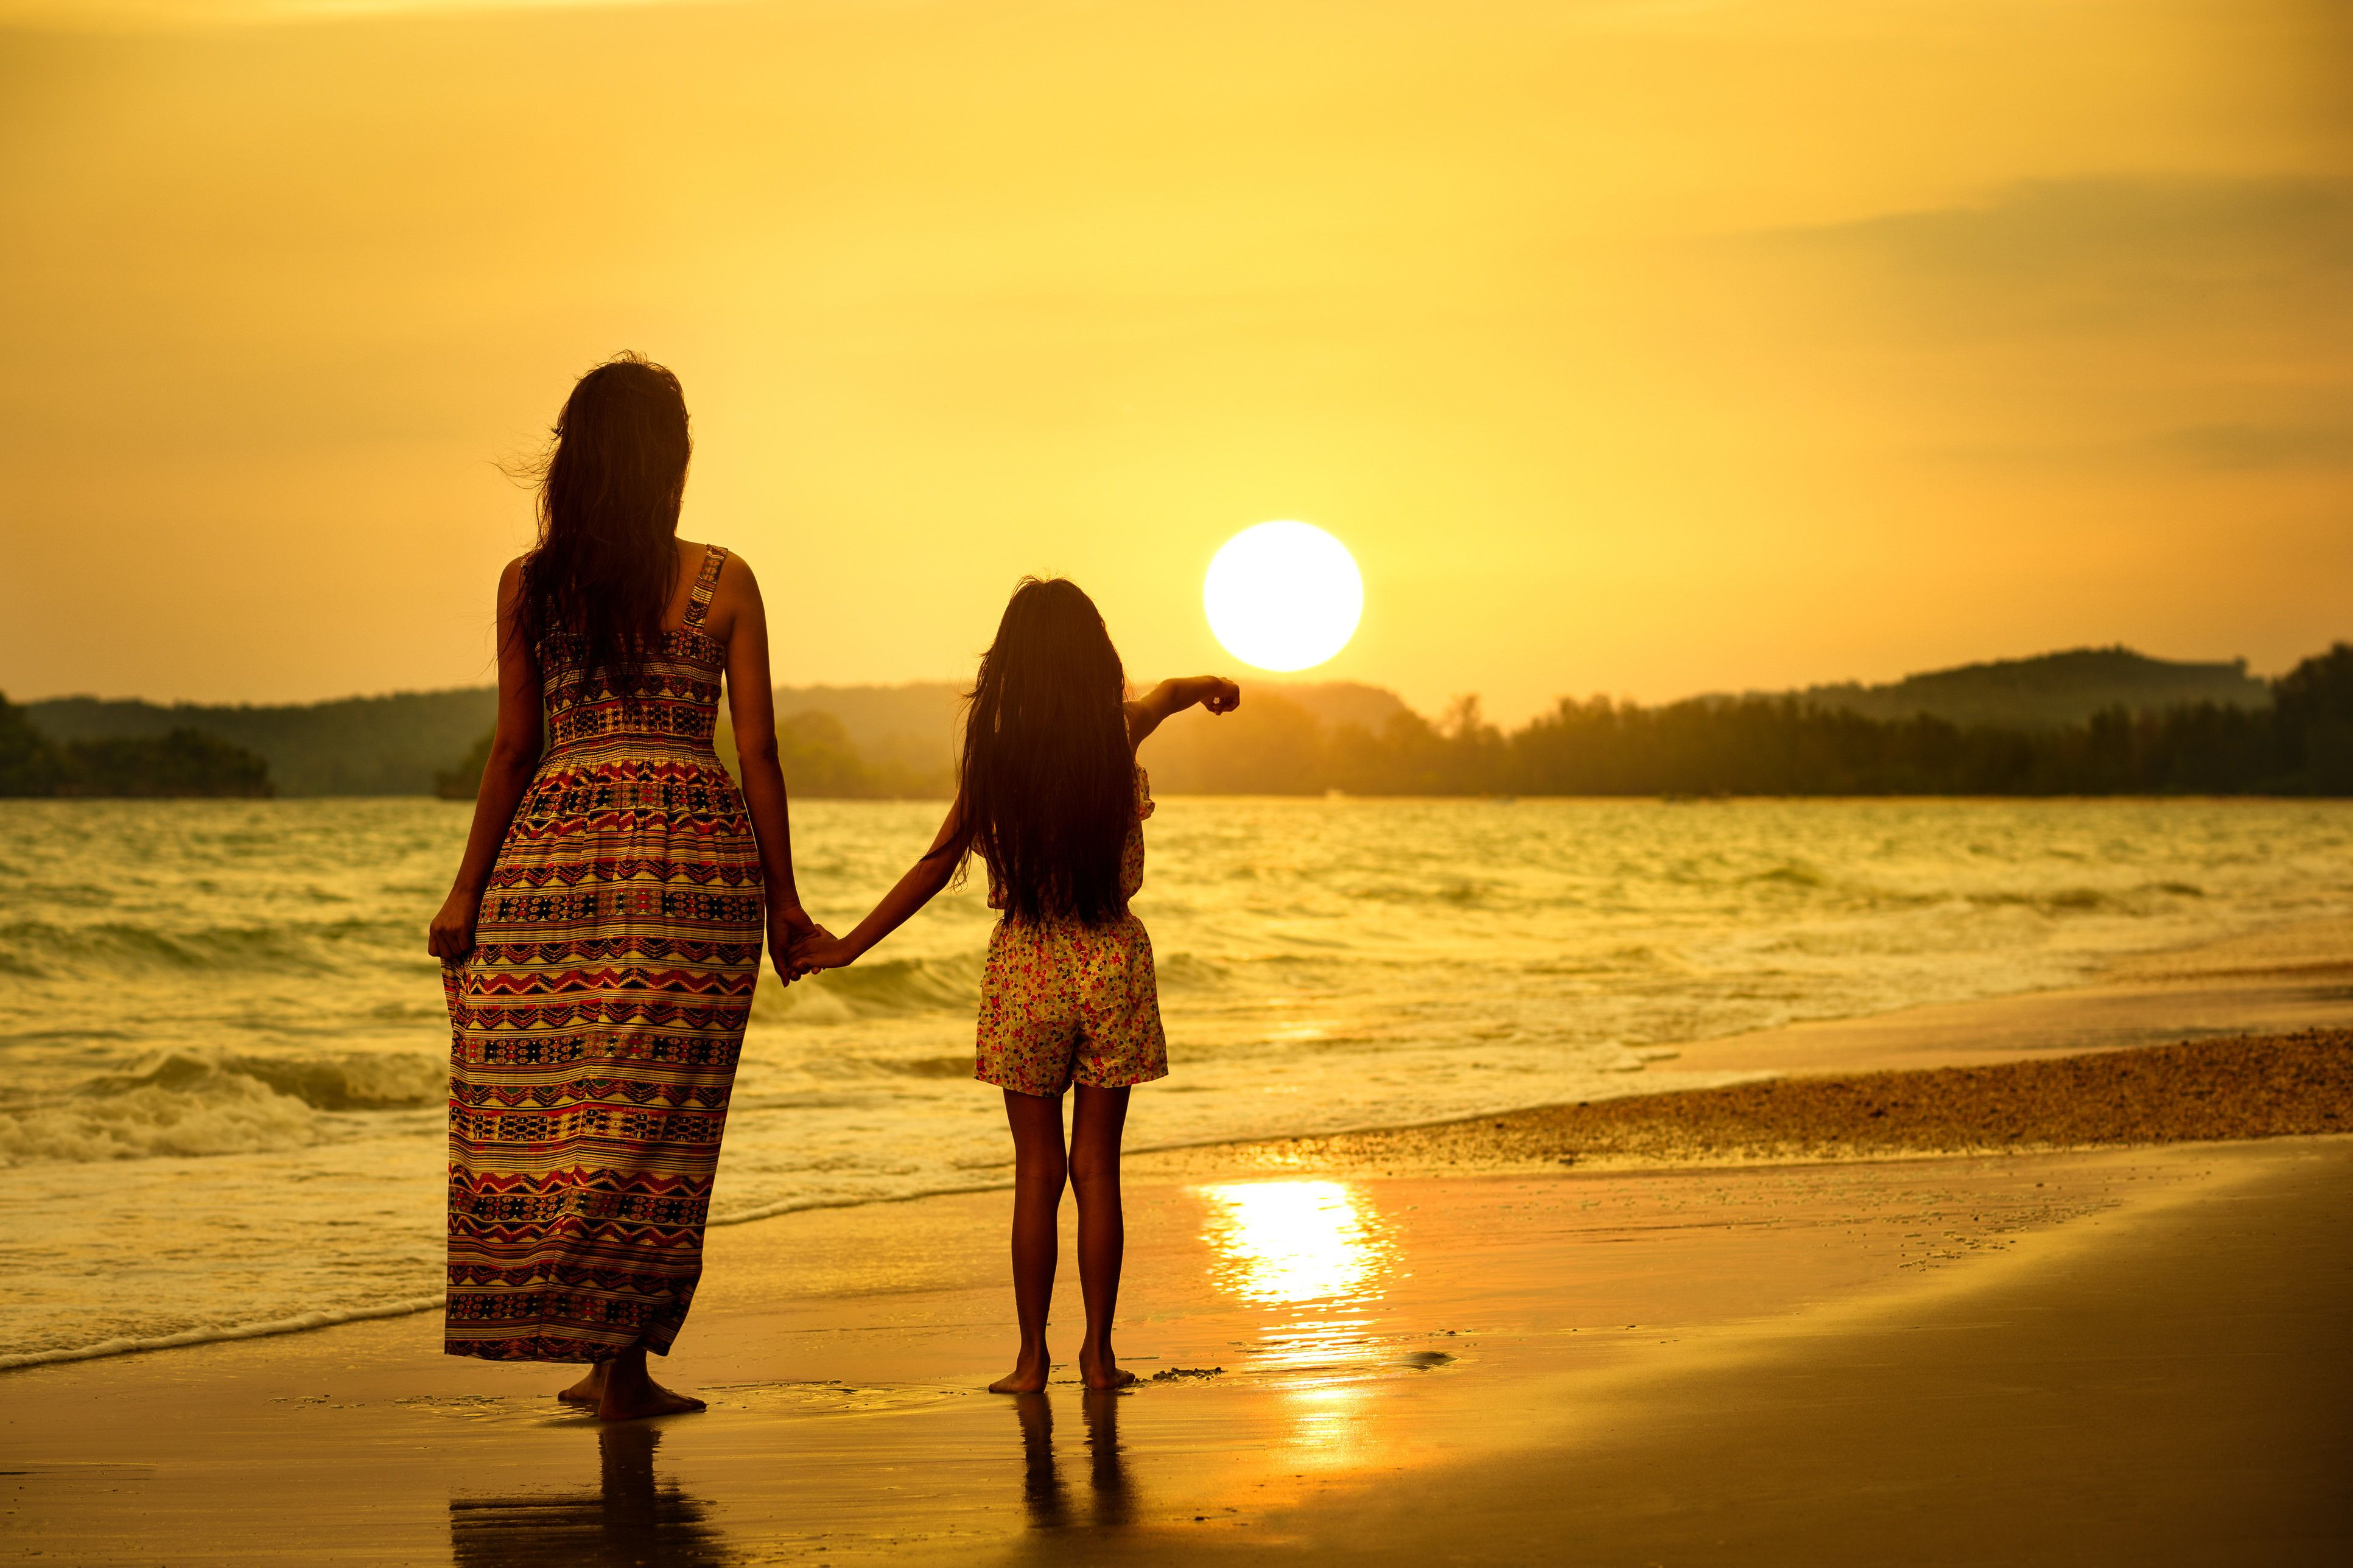 Rear view of a mother and daughter standing on the beach.